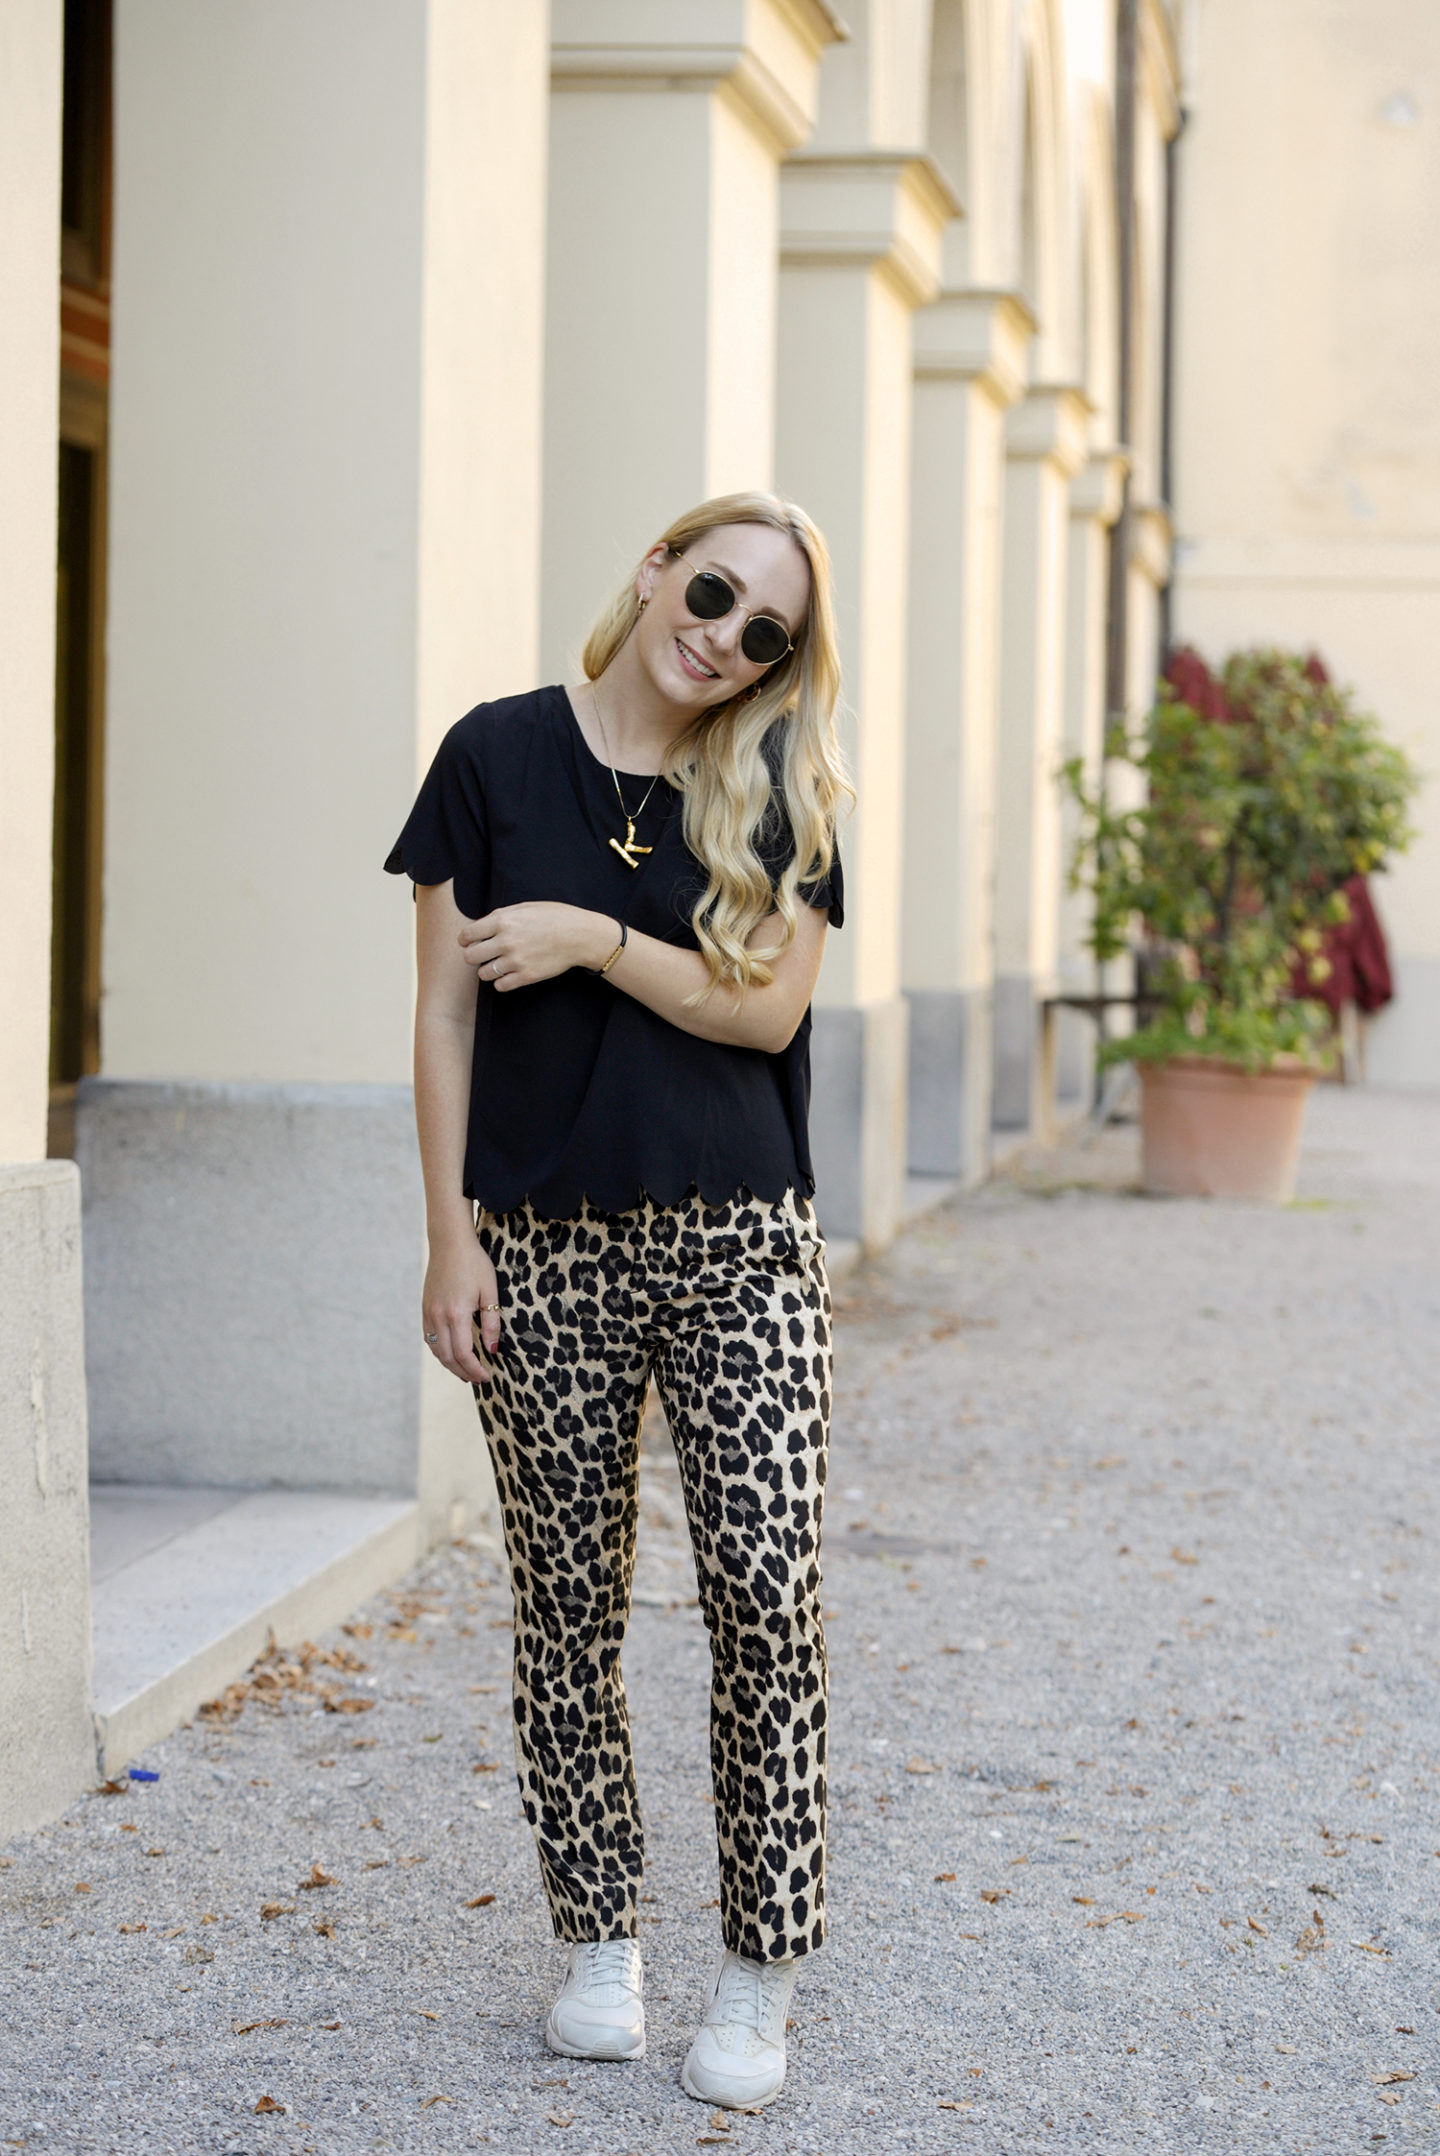 One pair of leopard print pants – two different styles